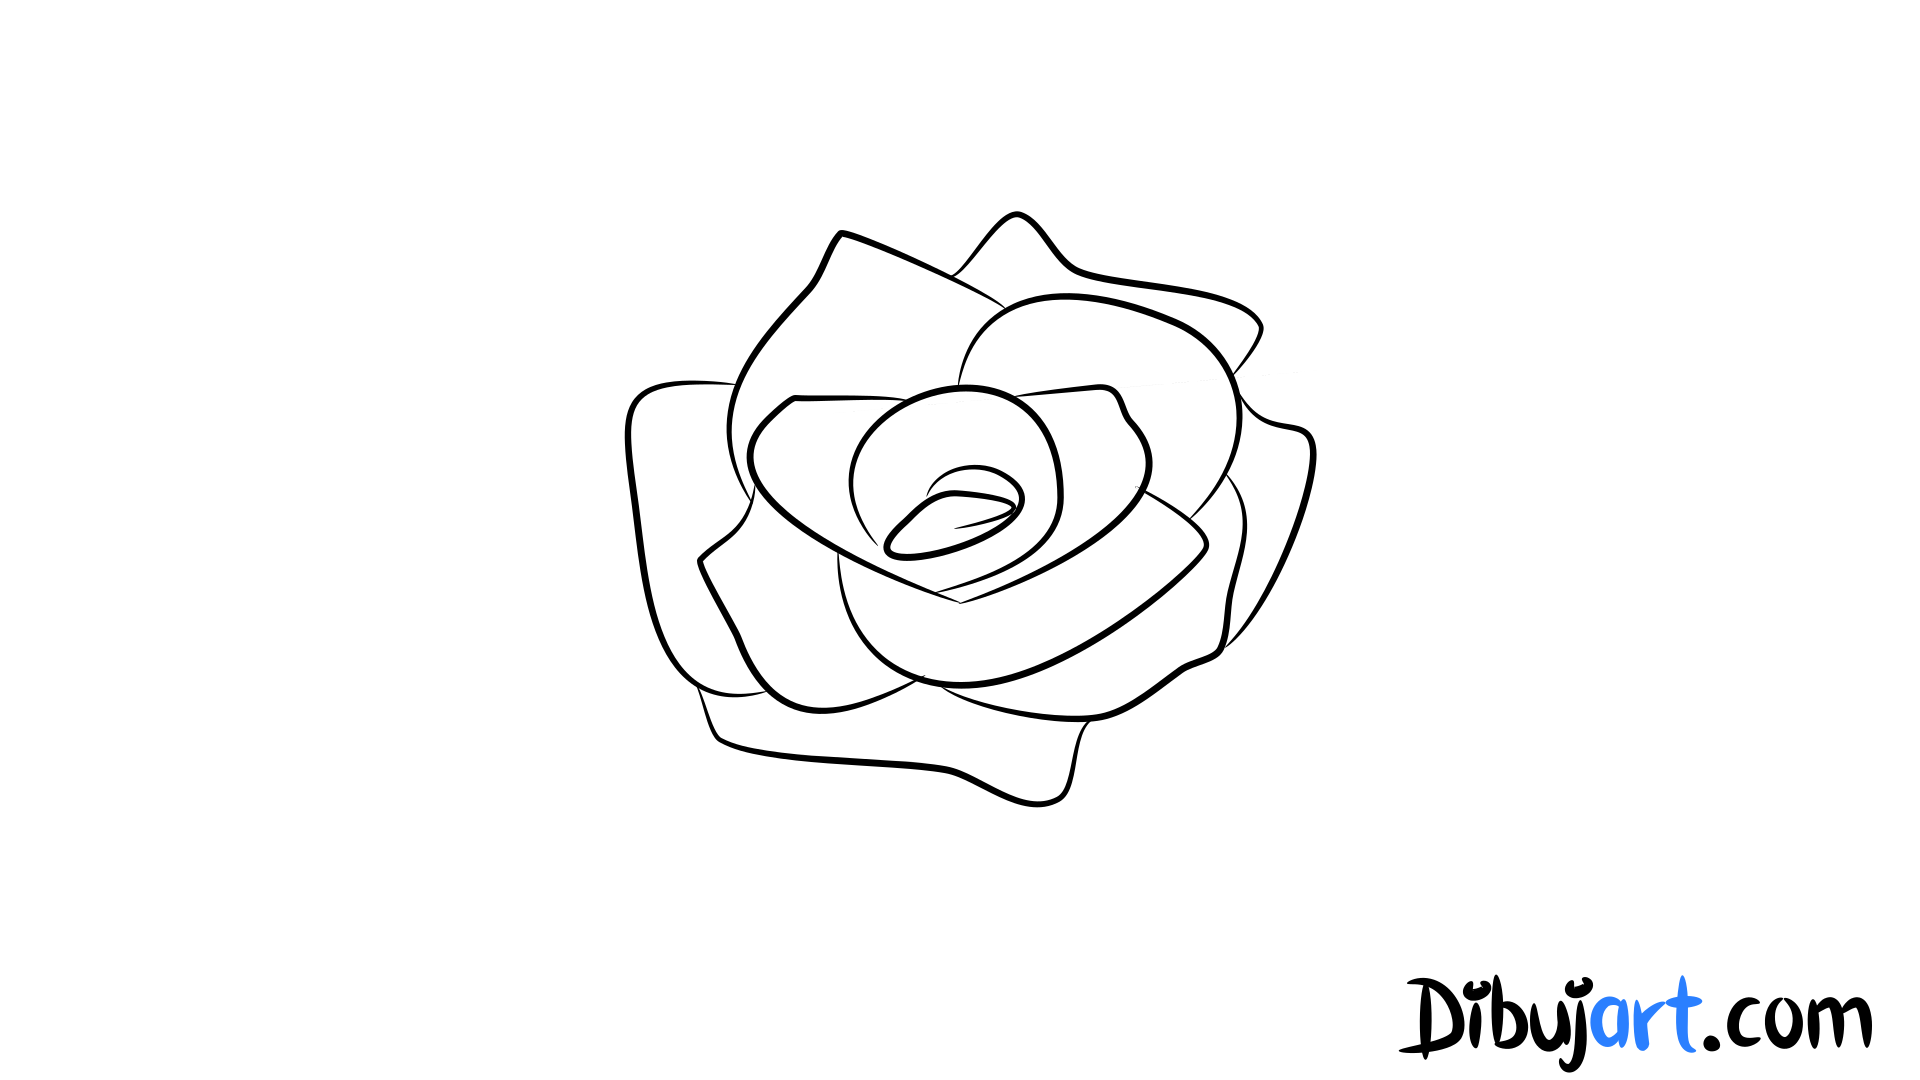 Rosa dibujo facil images galleries for Comedor facil de dibujar